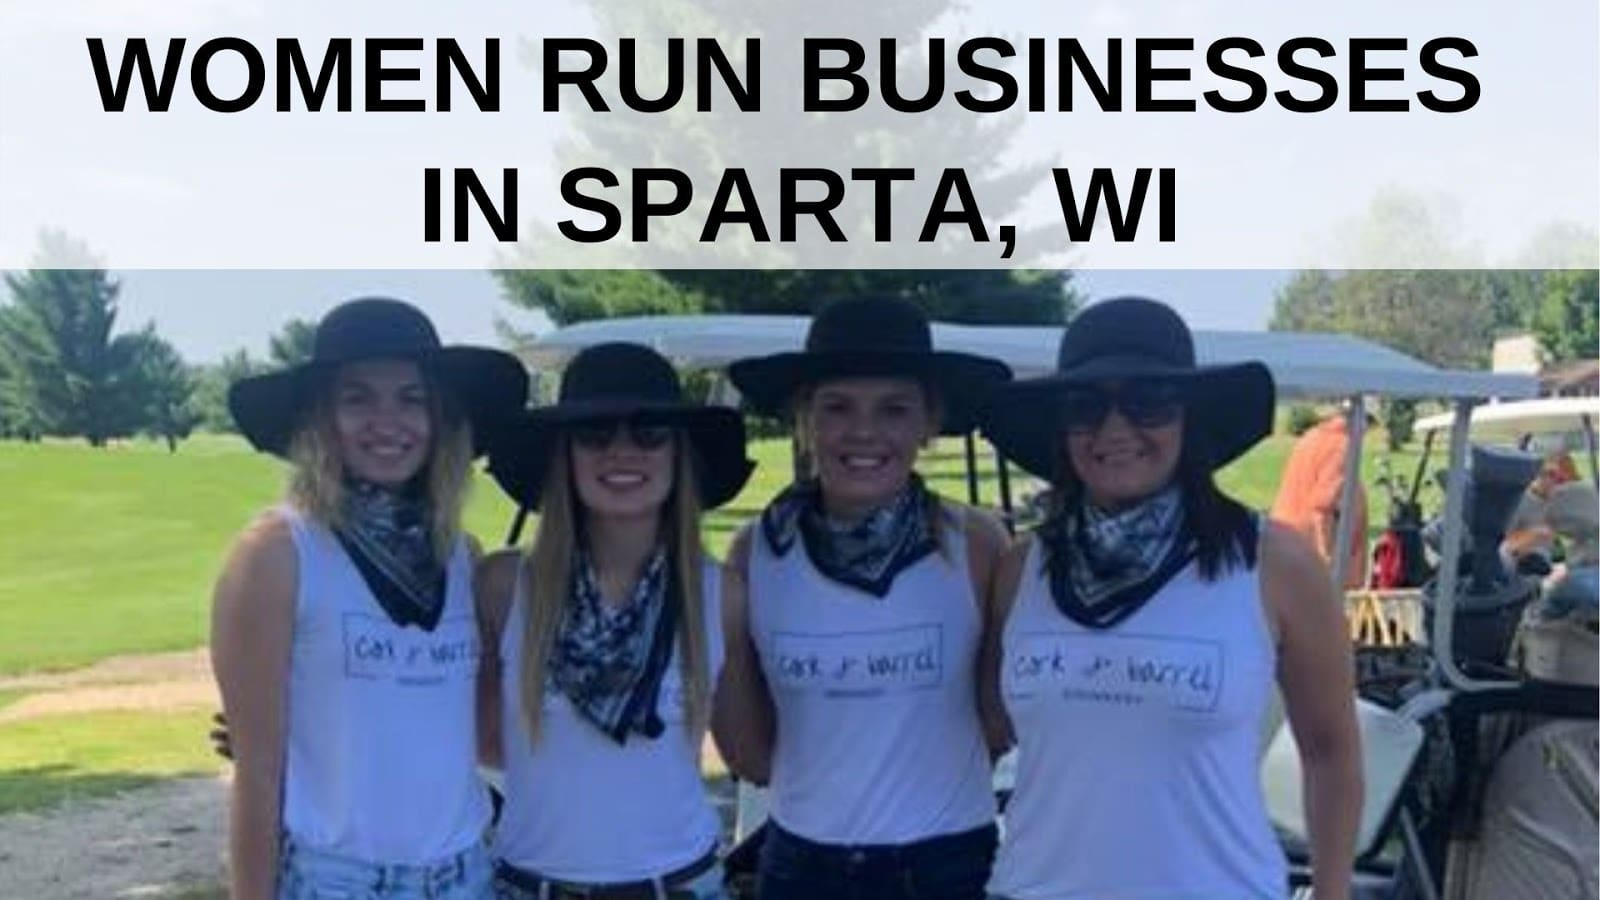 Women-Run Businesses in Sparta, WI